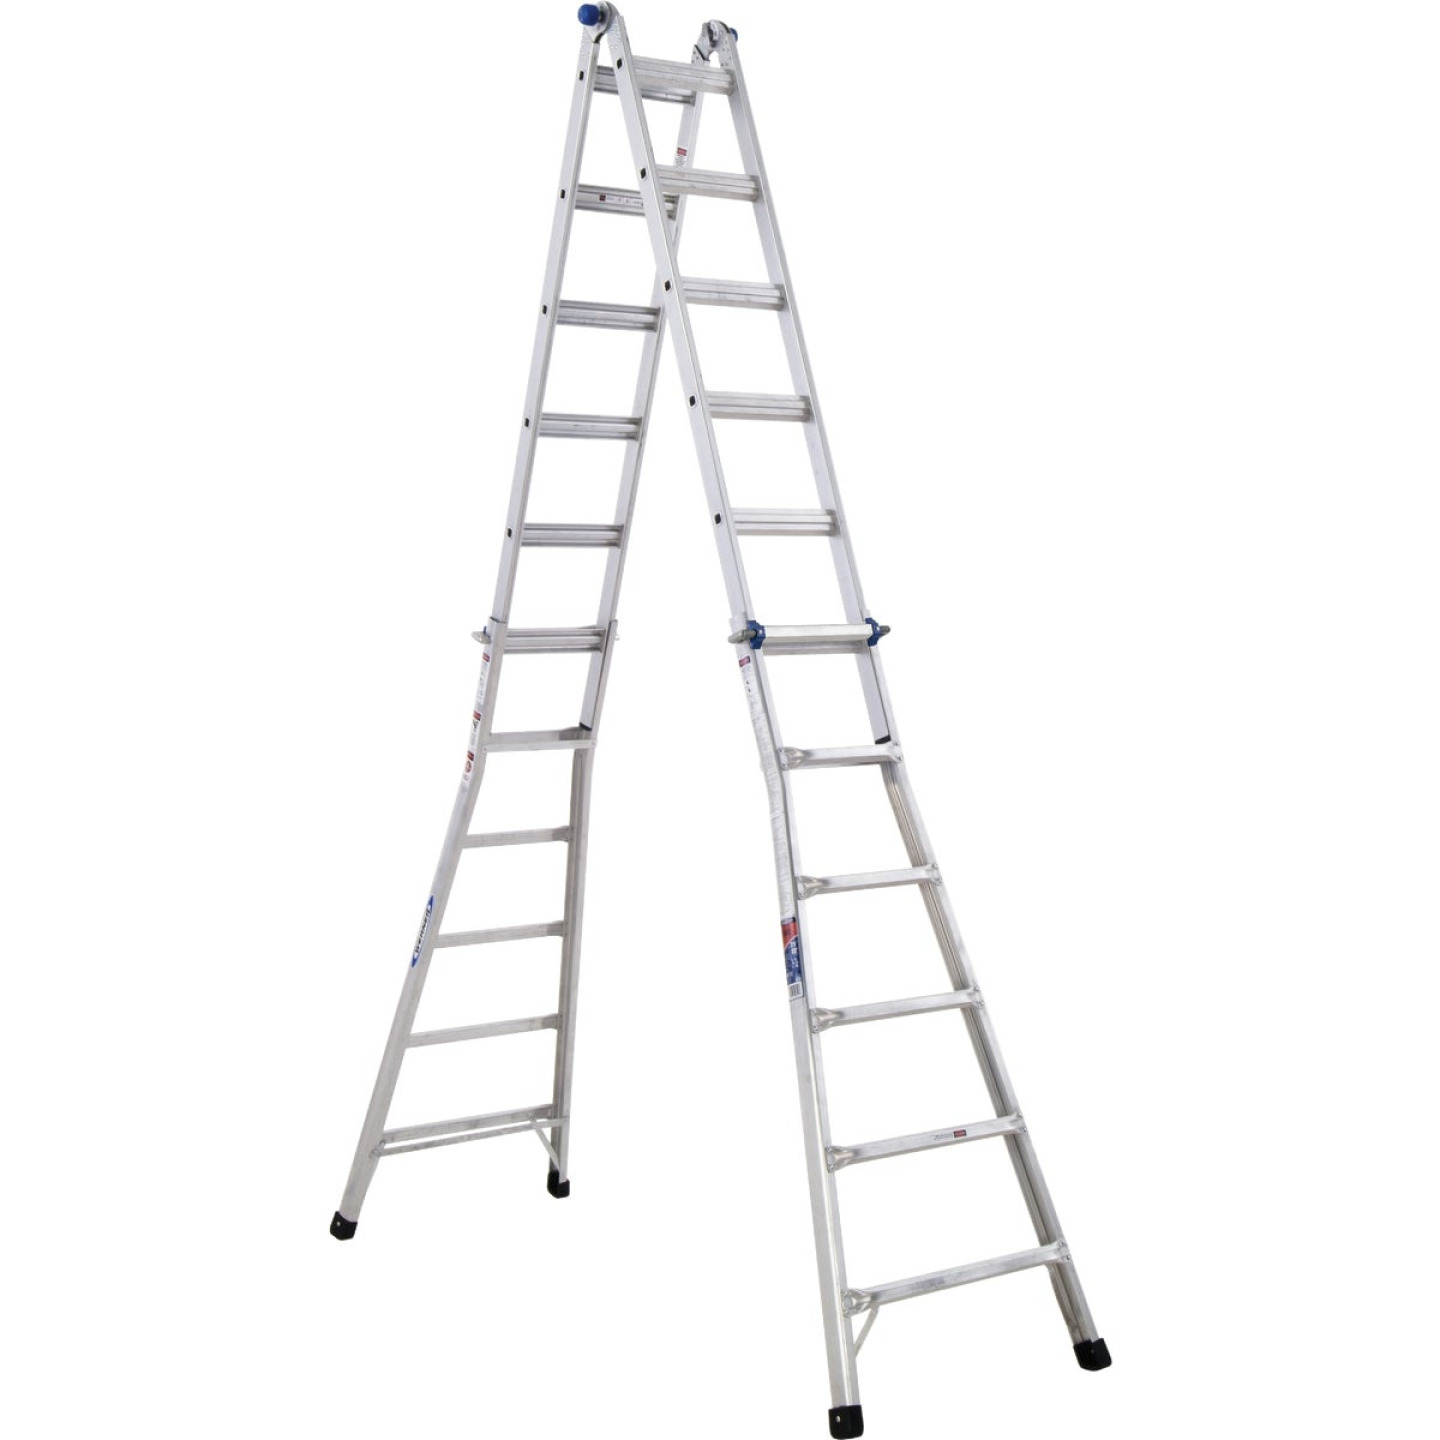 Werner 26 Ft. Aluminum Multi-Position Telescoping Ladder with 300 Lb. Load Capacity Type IA Ladder Rating Image 10